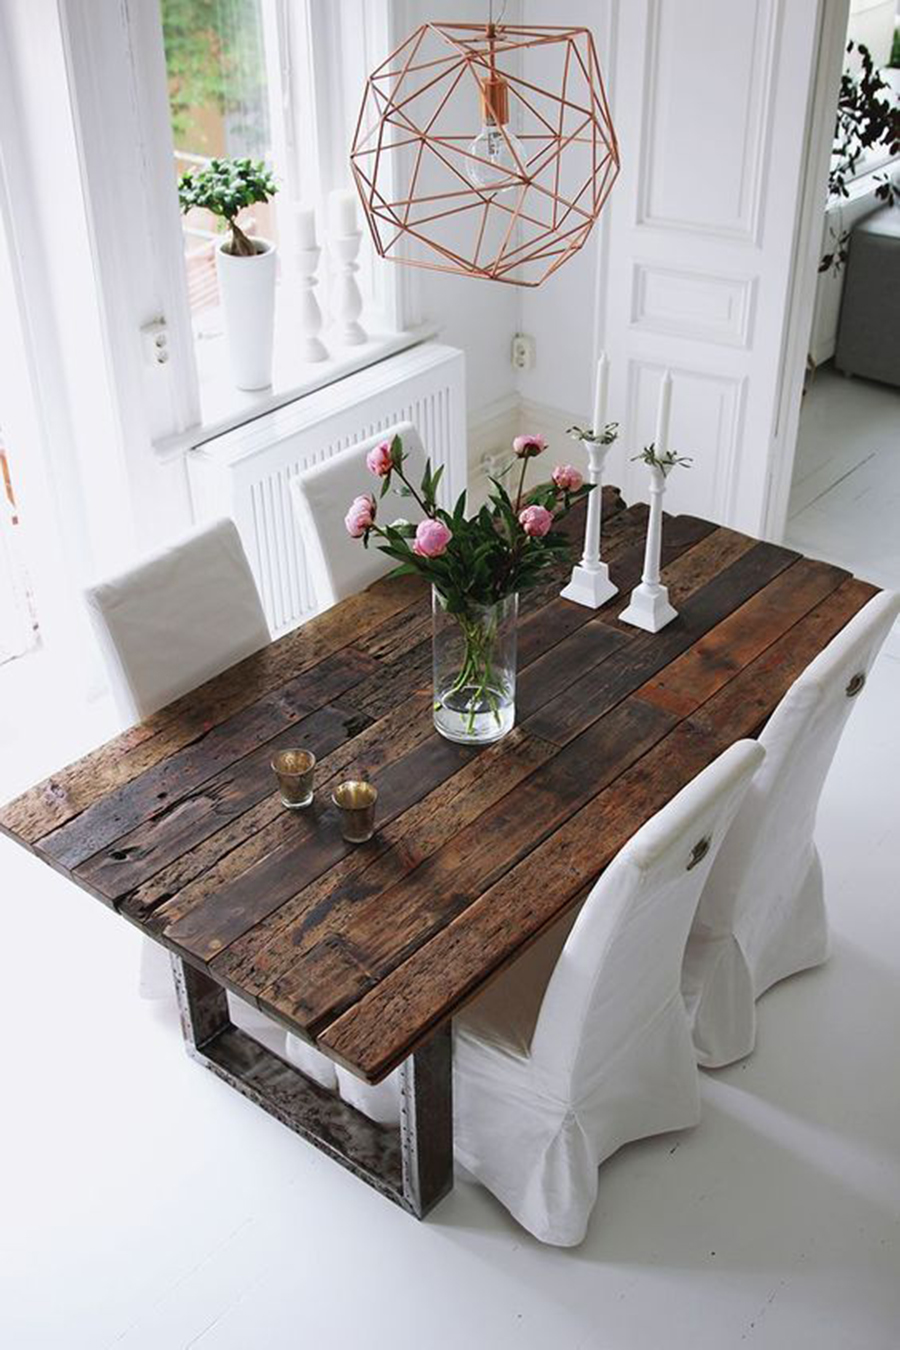 Round vs Square Tables: which ones are better for your interior design